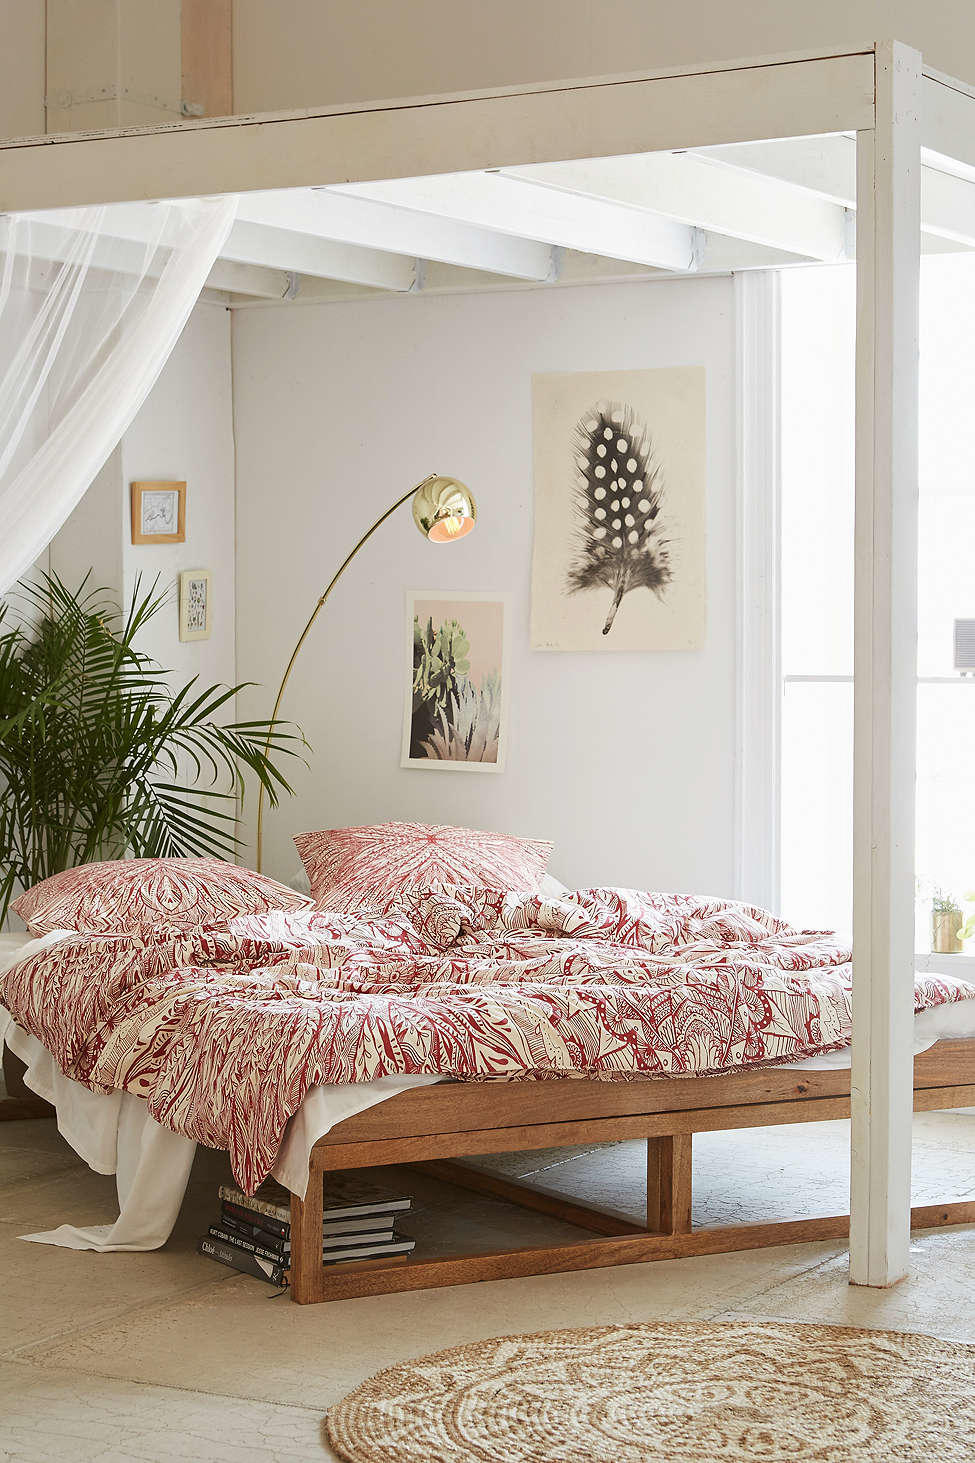 Morey Platform Bed Urban Outfitters From Urban Outfitters